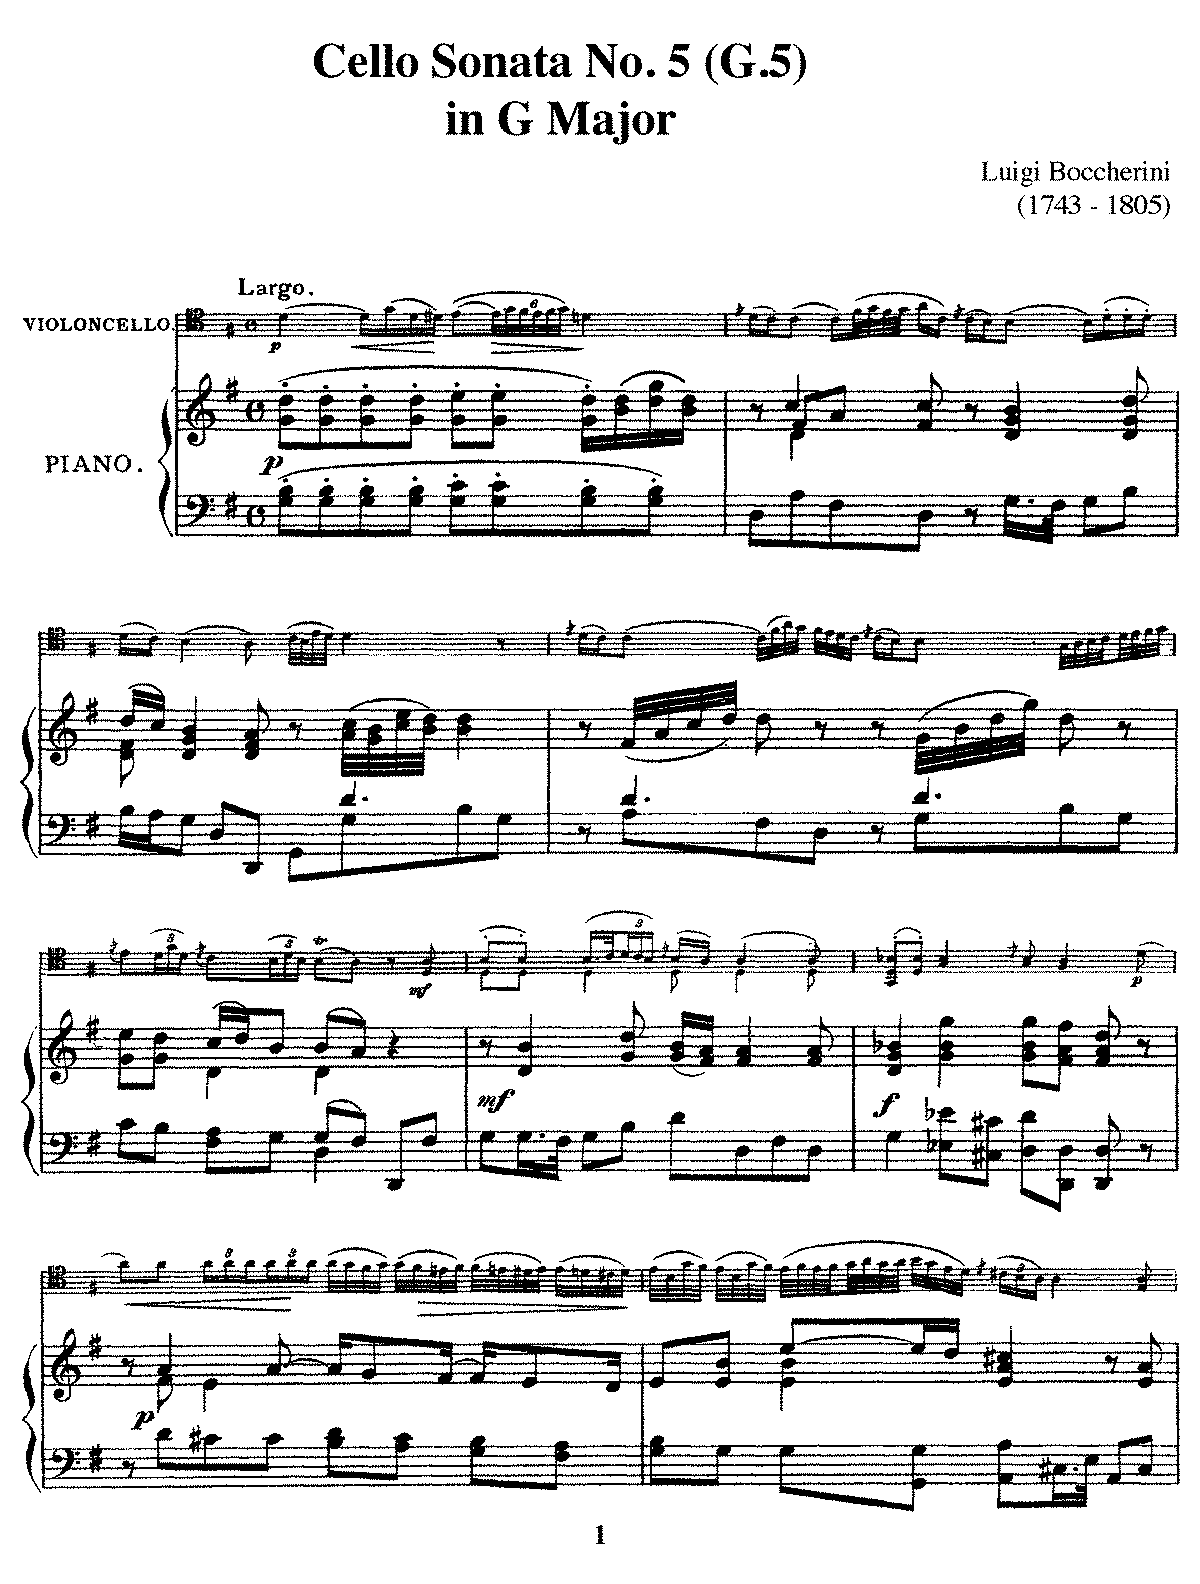 PMLP57417-Boccherini - Cello Sonata in G Major G5 piano.pdf